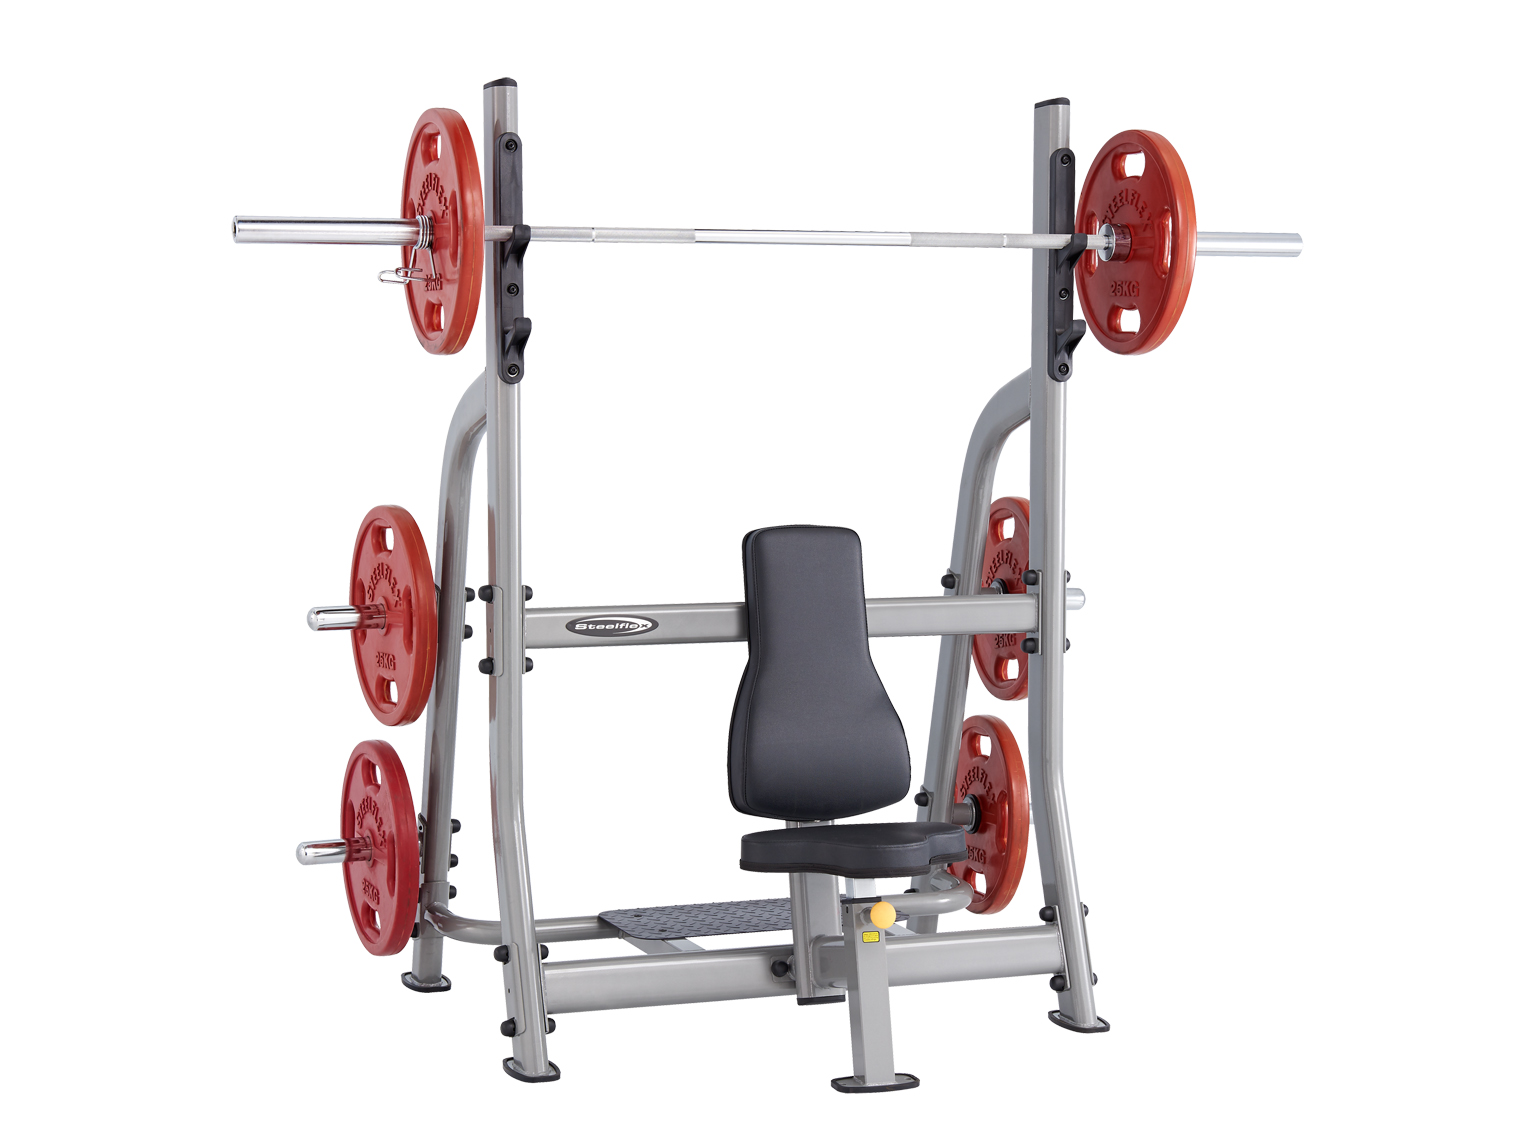 Steelflex Olympic Shoulder Press